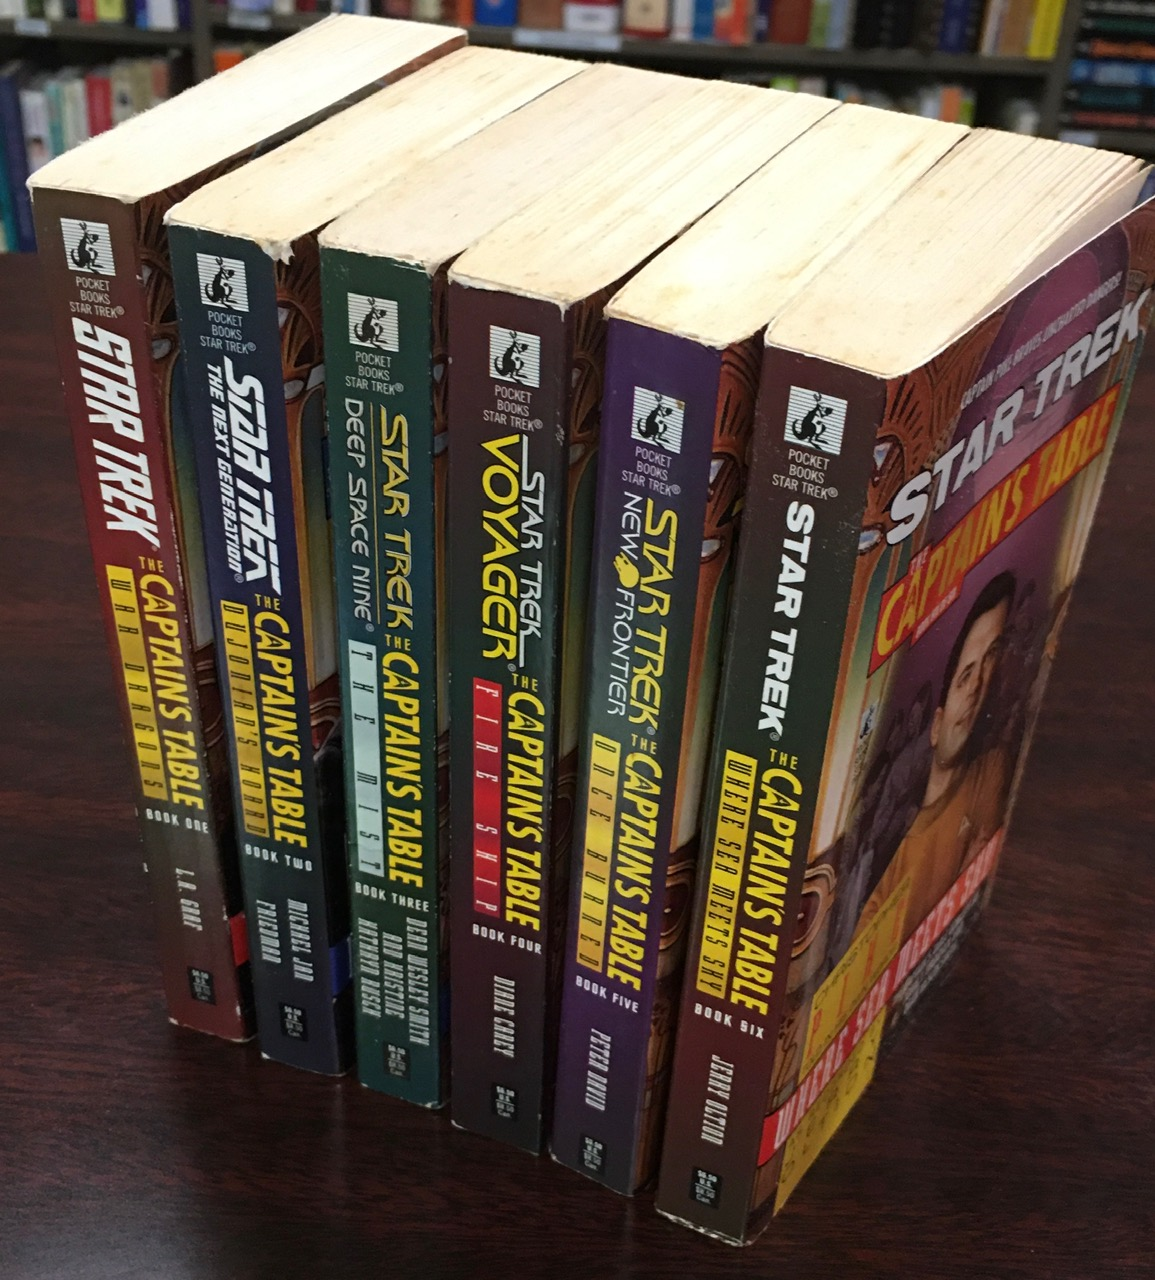 Image for Star Trek: The Captain's Table Series - 6 Volume Set (Book 1: War Dragons; Book 2: Dujonains Hoard; Book 3: The Mist; Book 4: Fire Ship; Book 5: Once Burned; Book 6: Where the Sea Meets the Sky)